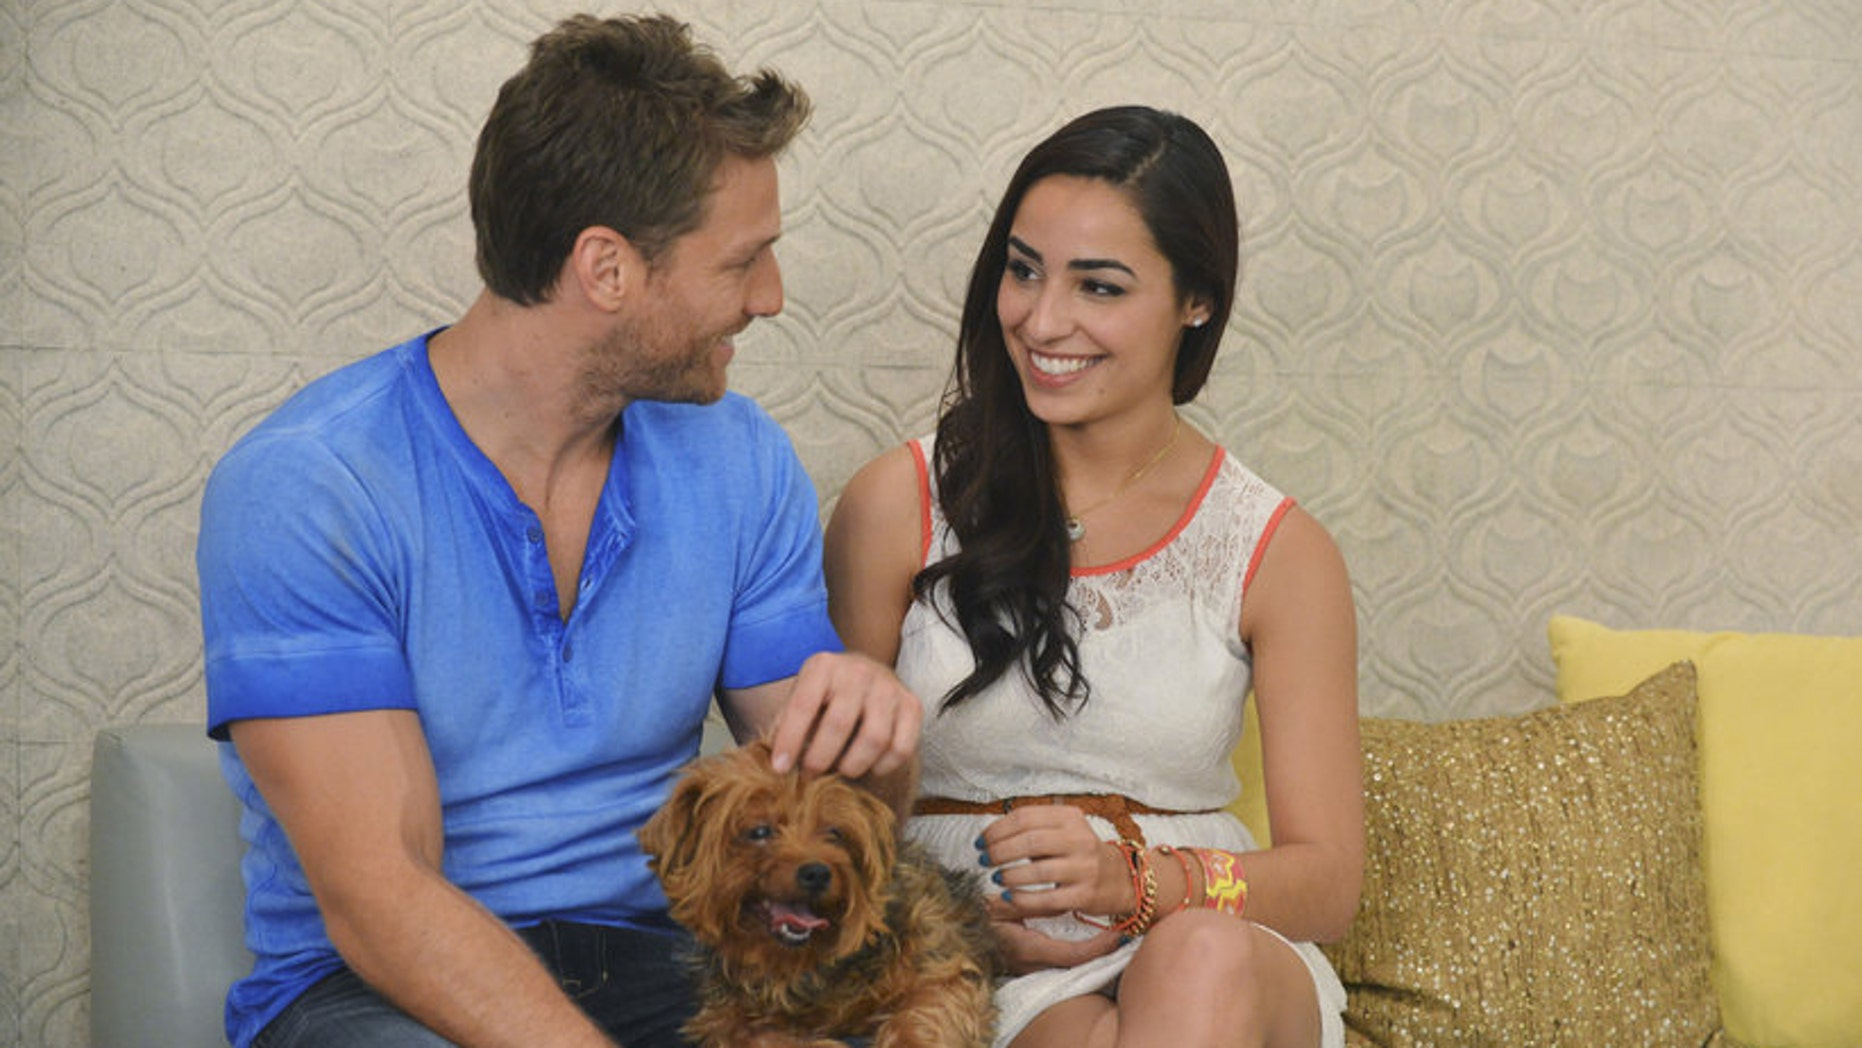 Juan Pablo and Victoria, before the epic meltdown.